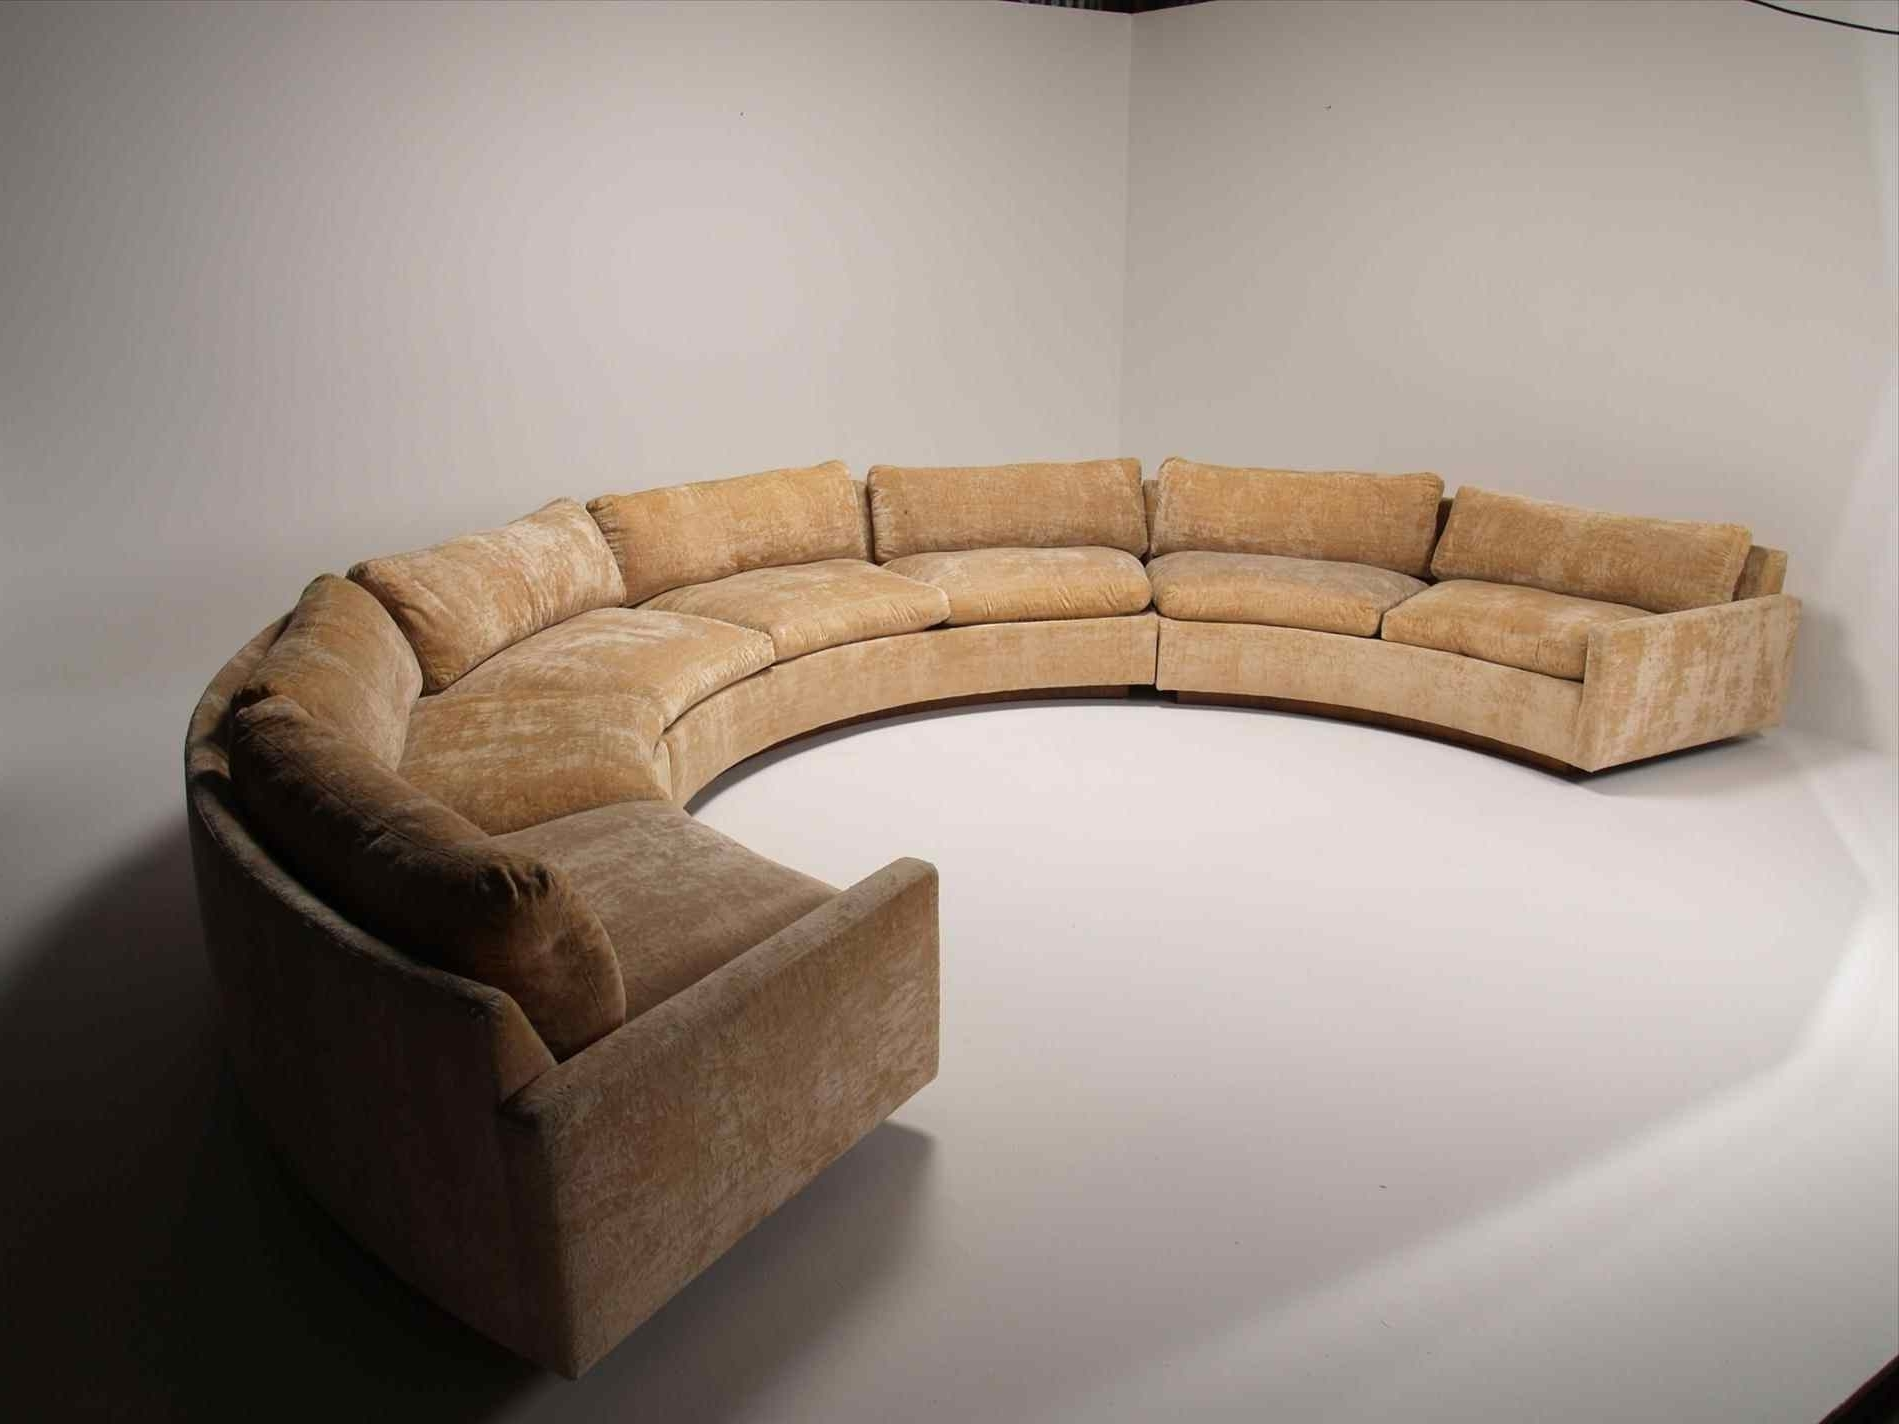 Couch : Ideas Sofascom Loveseat Circle Couch Best Sofas Ideas With Regard To Most Popular Circle Sofas (View 13 of 20)